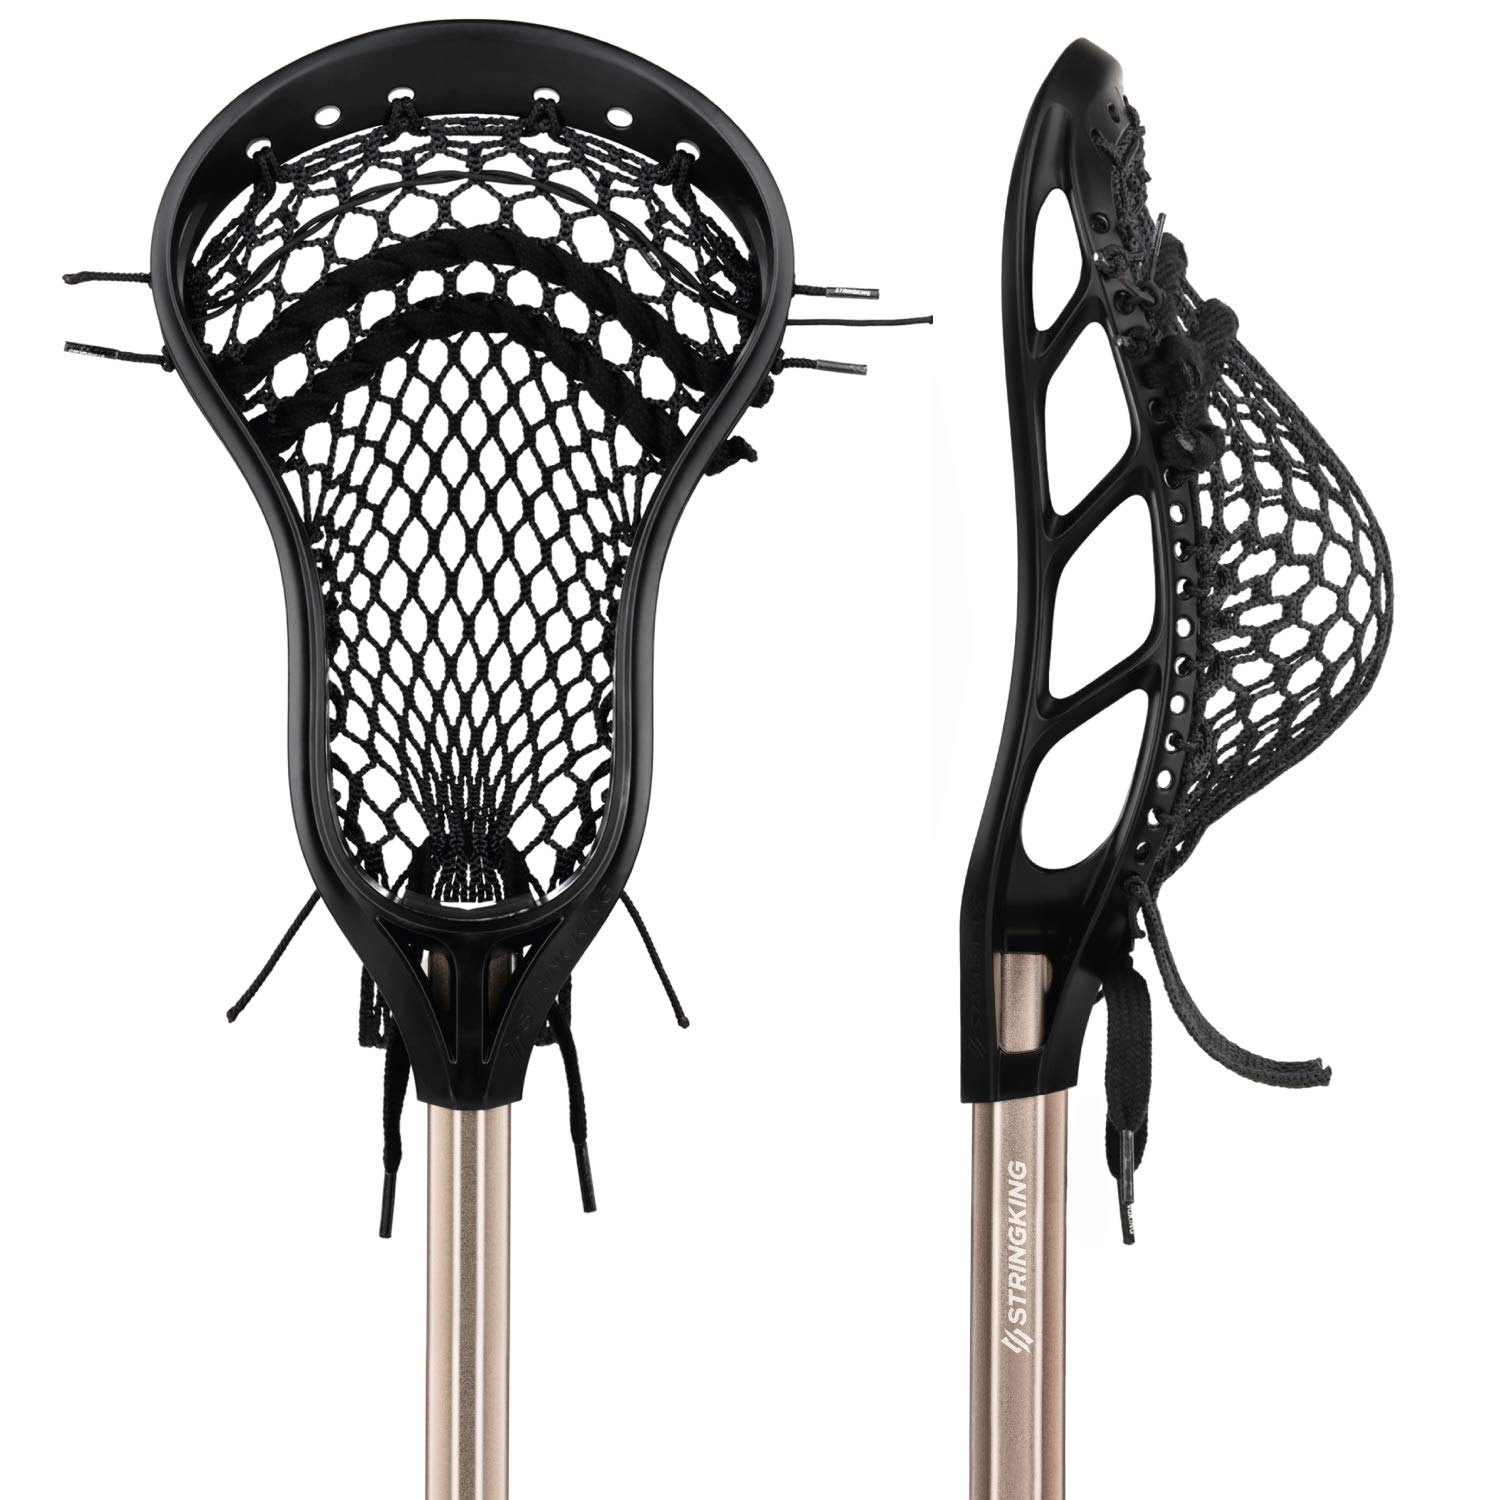 String King Complete Attack Lacrosse Stick with Head & Shaft (Assorted Colors)